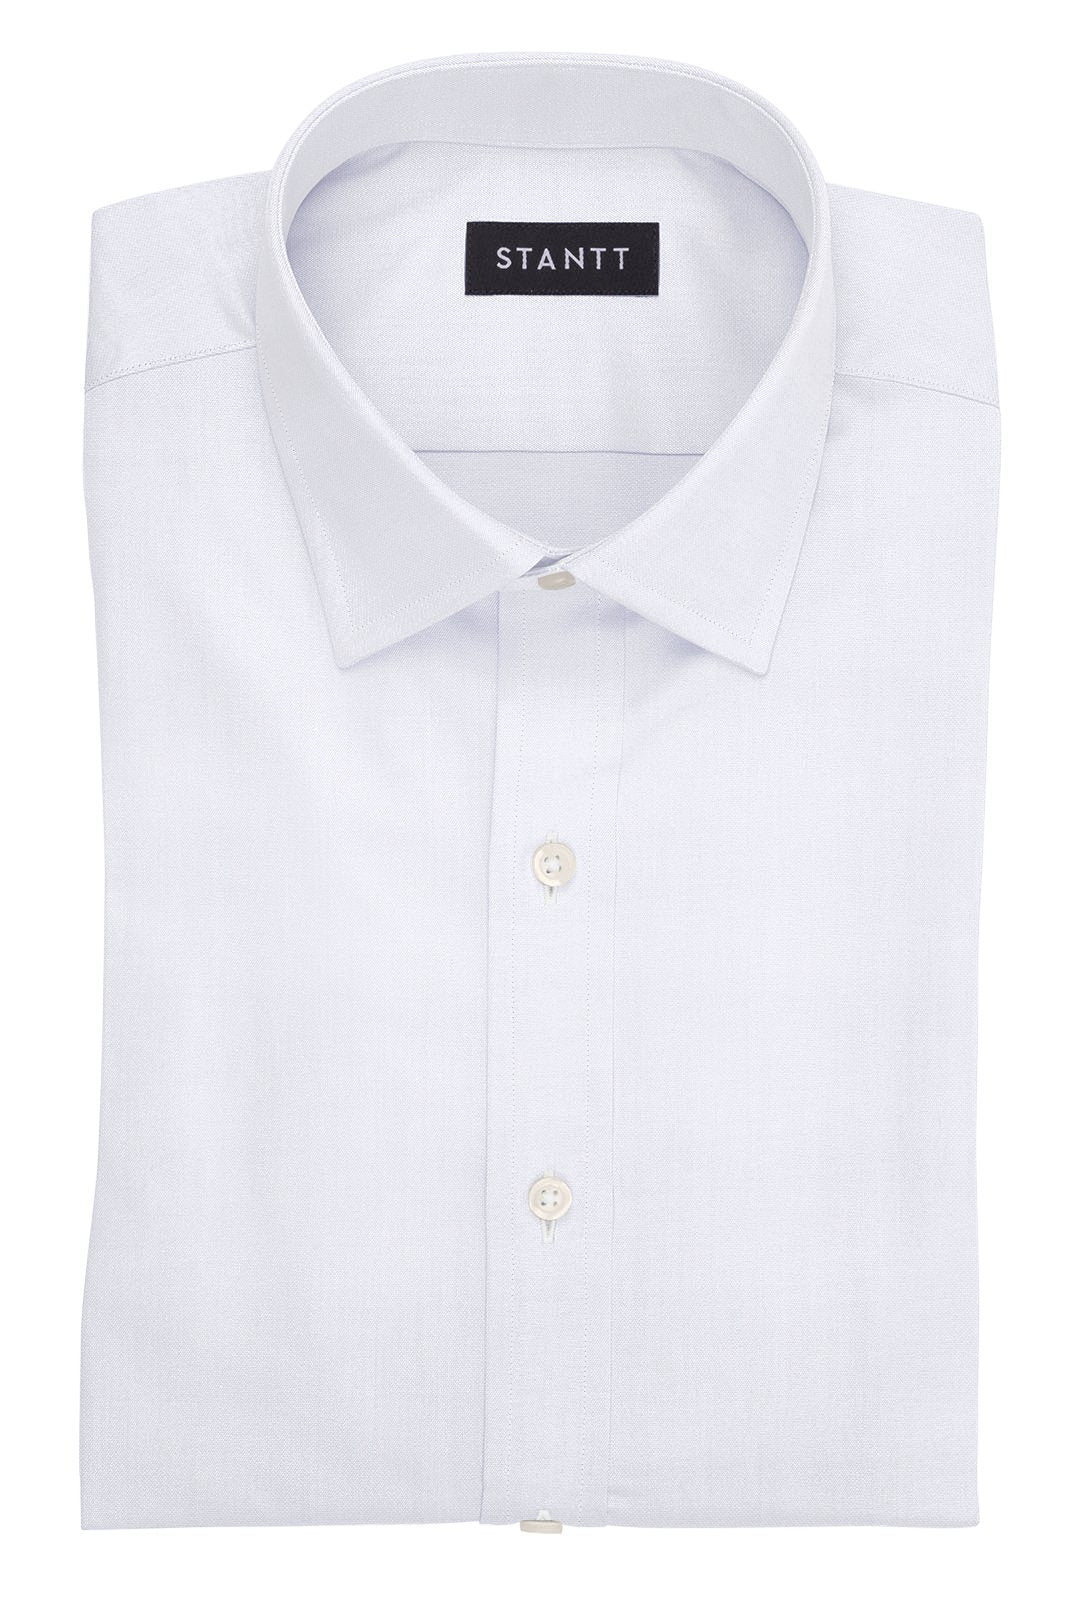 White Oxford: Modified Spread Collar, Barrel Cuff